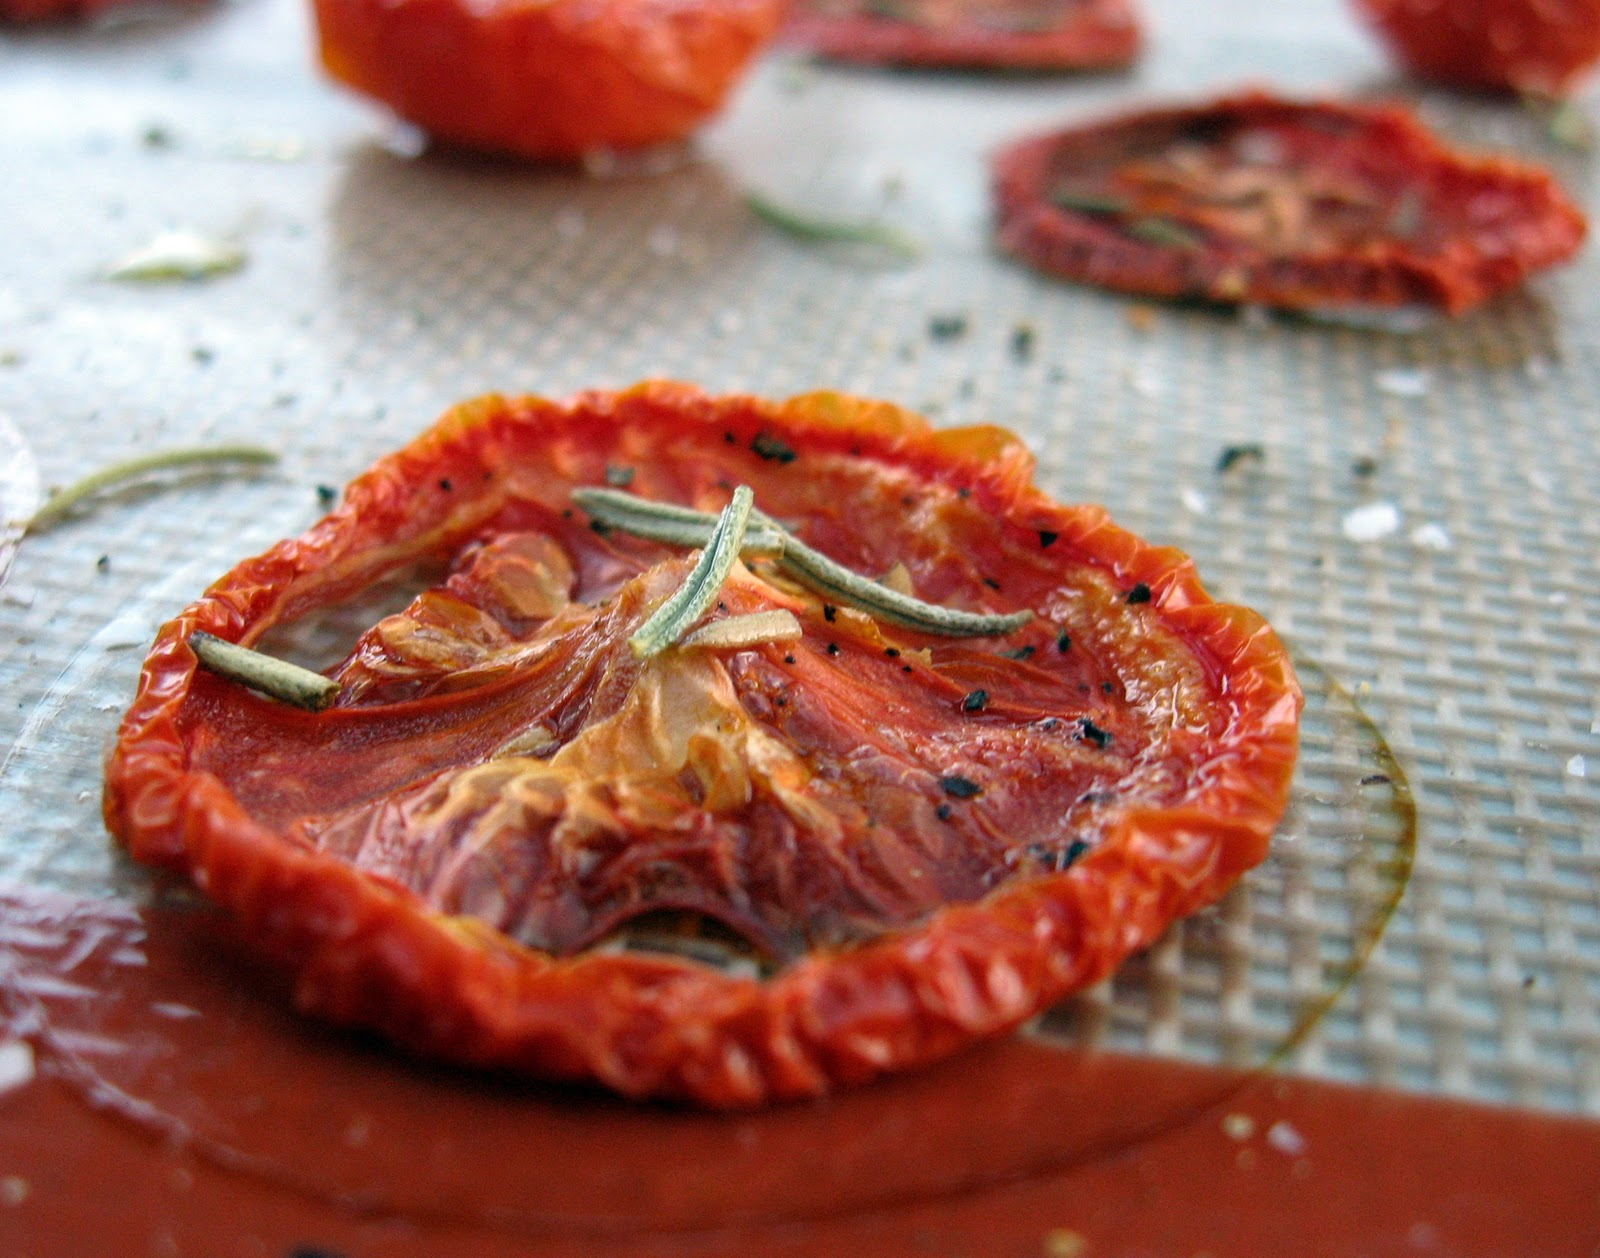 Farm share stories: Slow-Roasted Tomatoes II